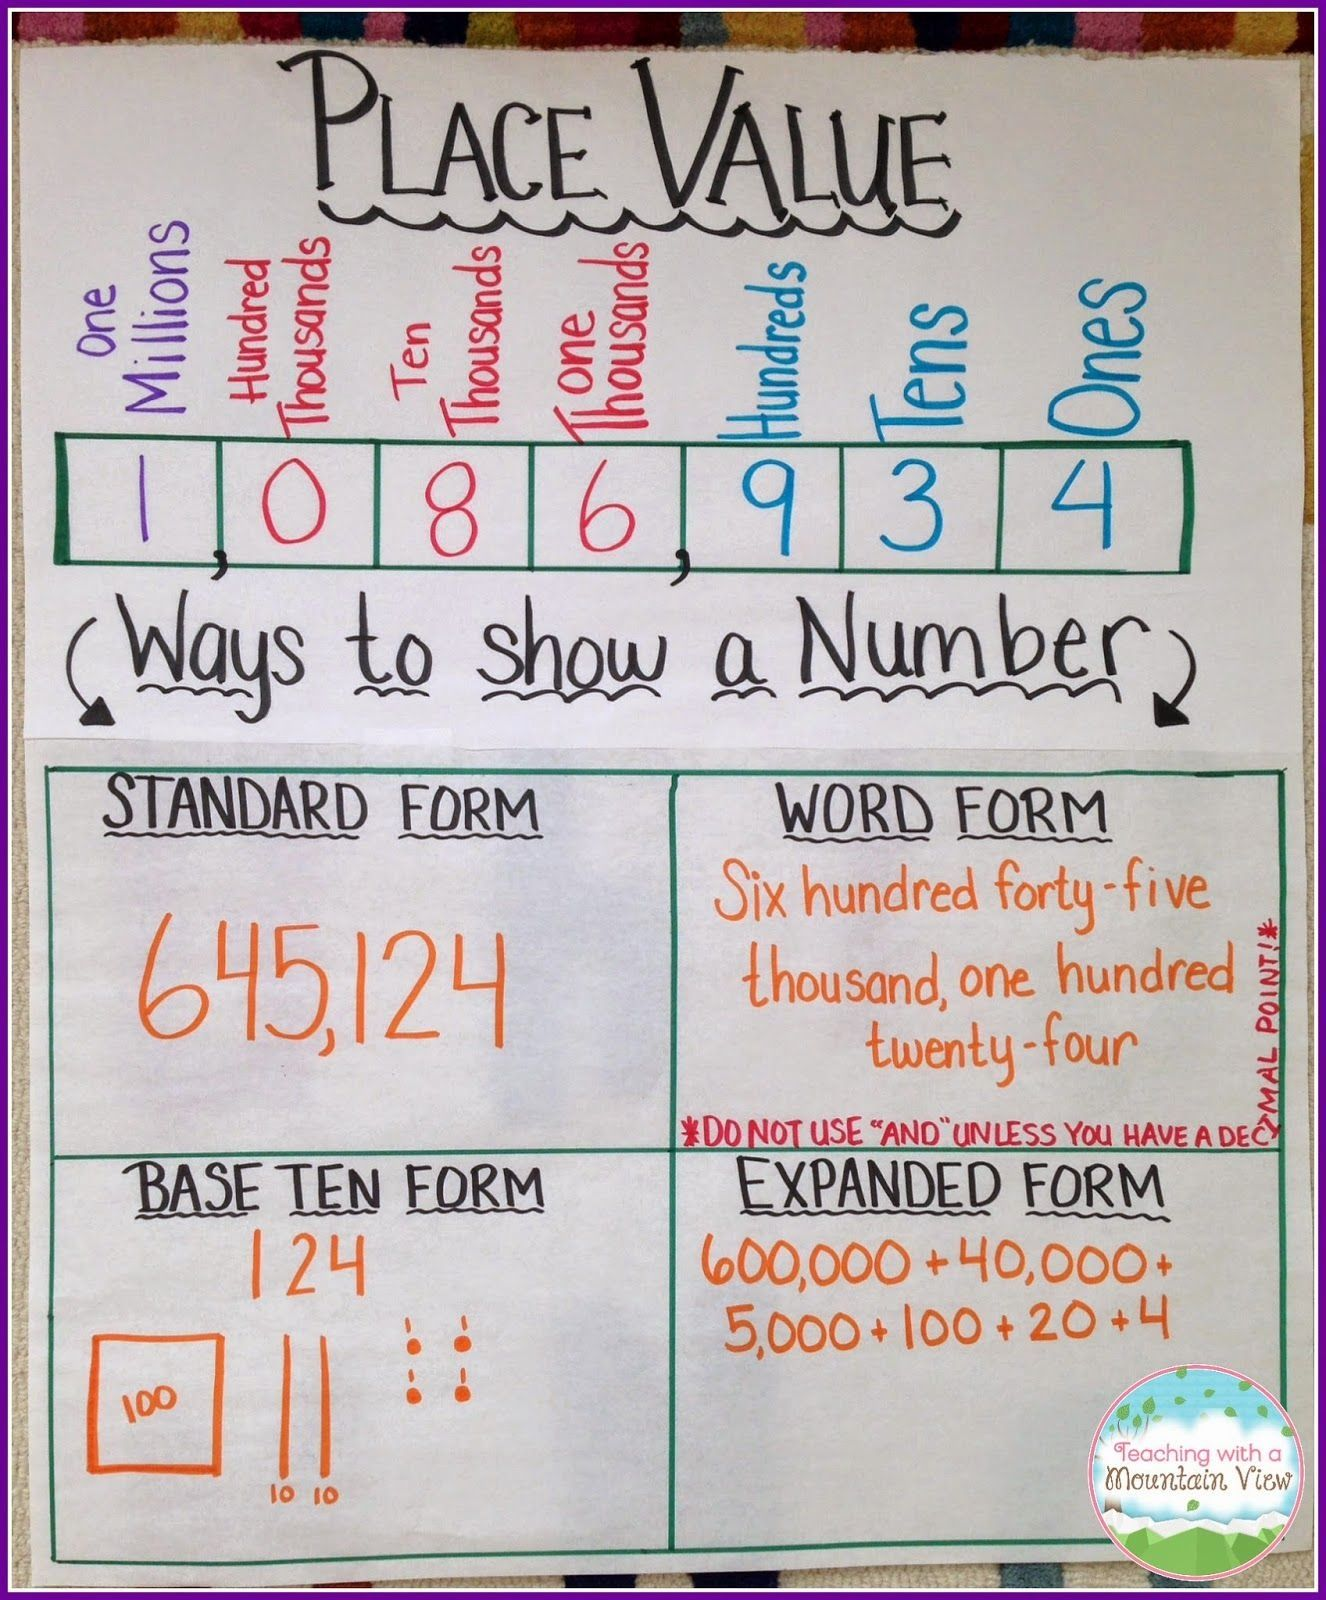 Standard Form Place Value Chart 11 Things Your Boss Needs